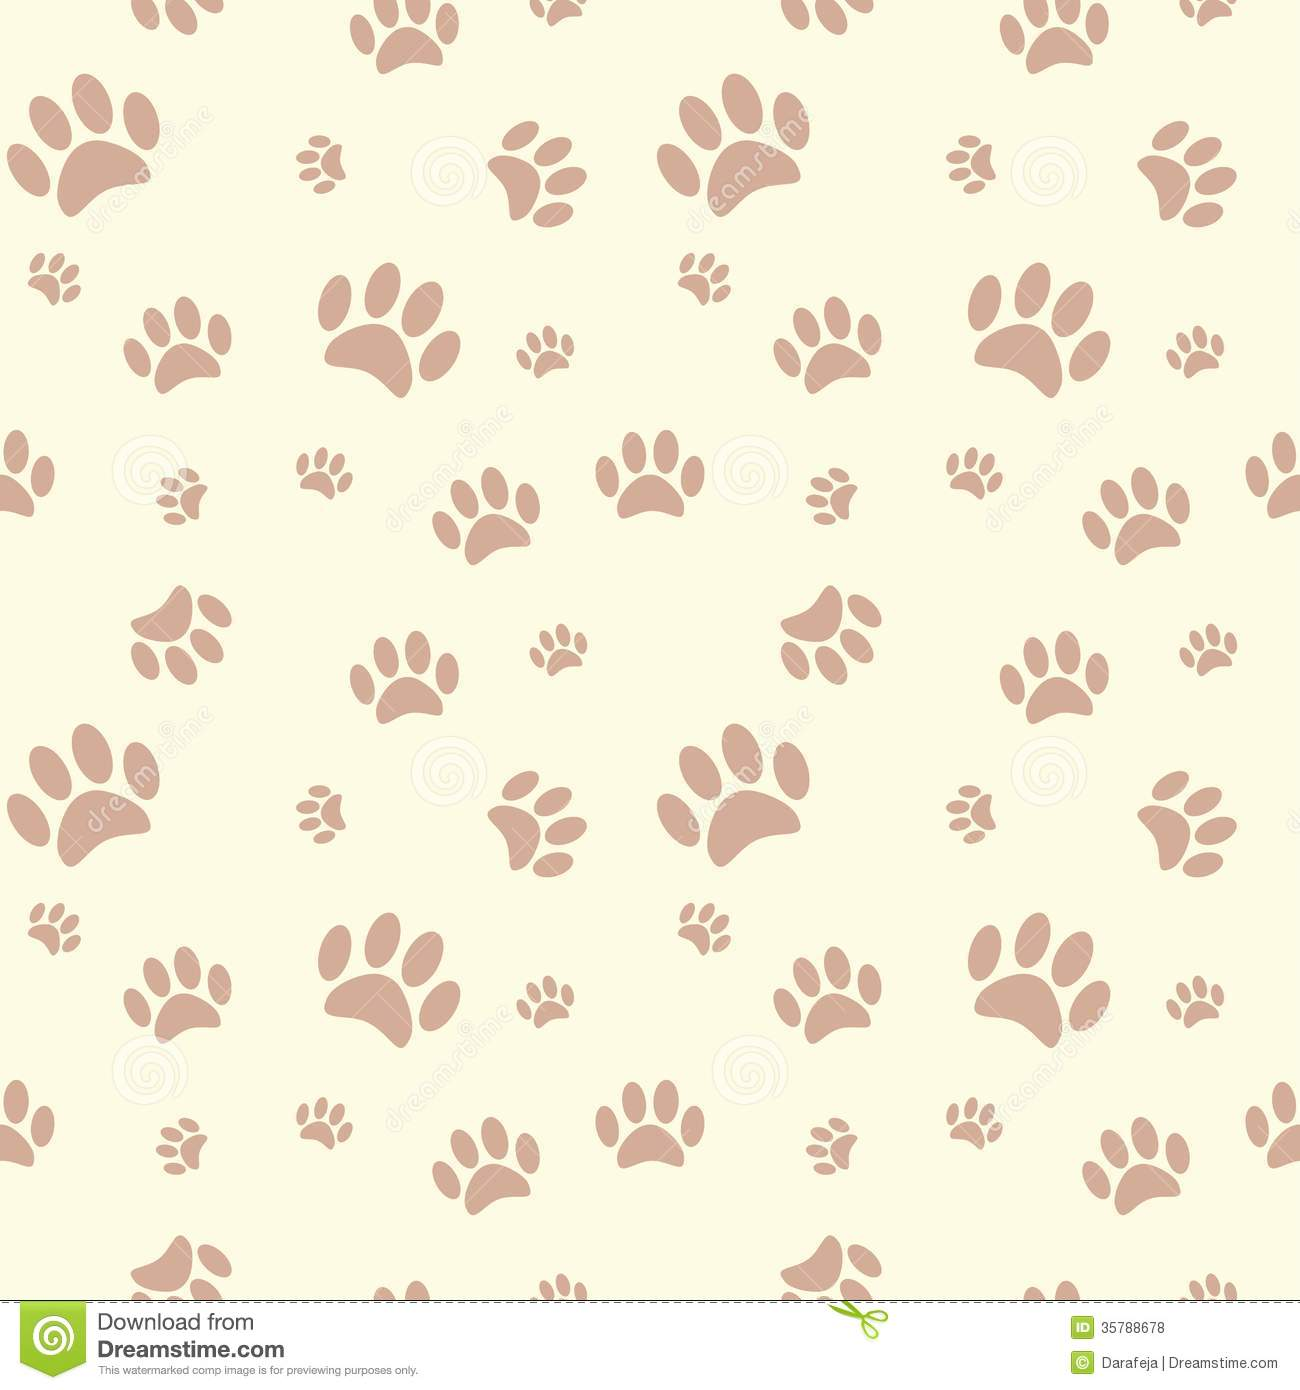 Dog Print Wallpaper Fascinating Of Dog Bone and Paw Print Background Picture